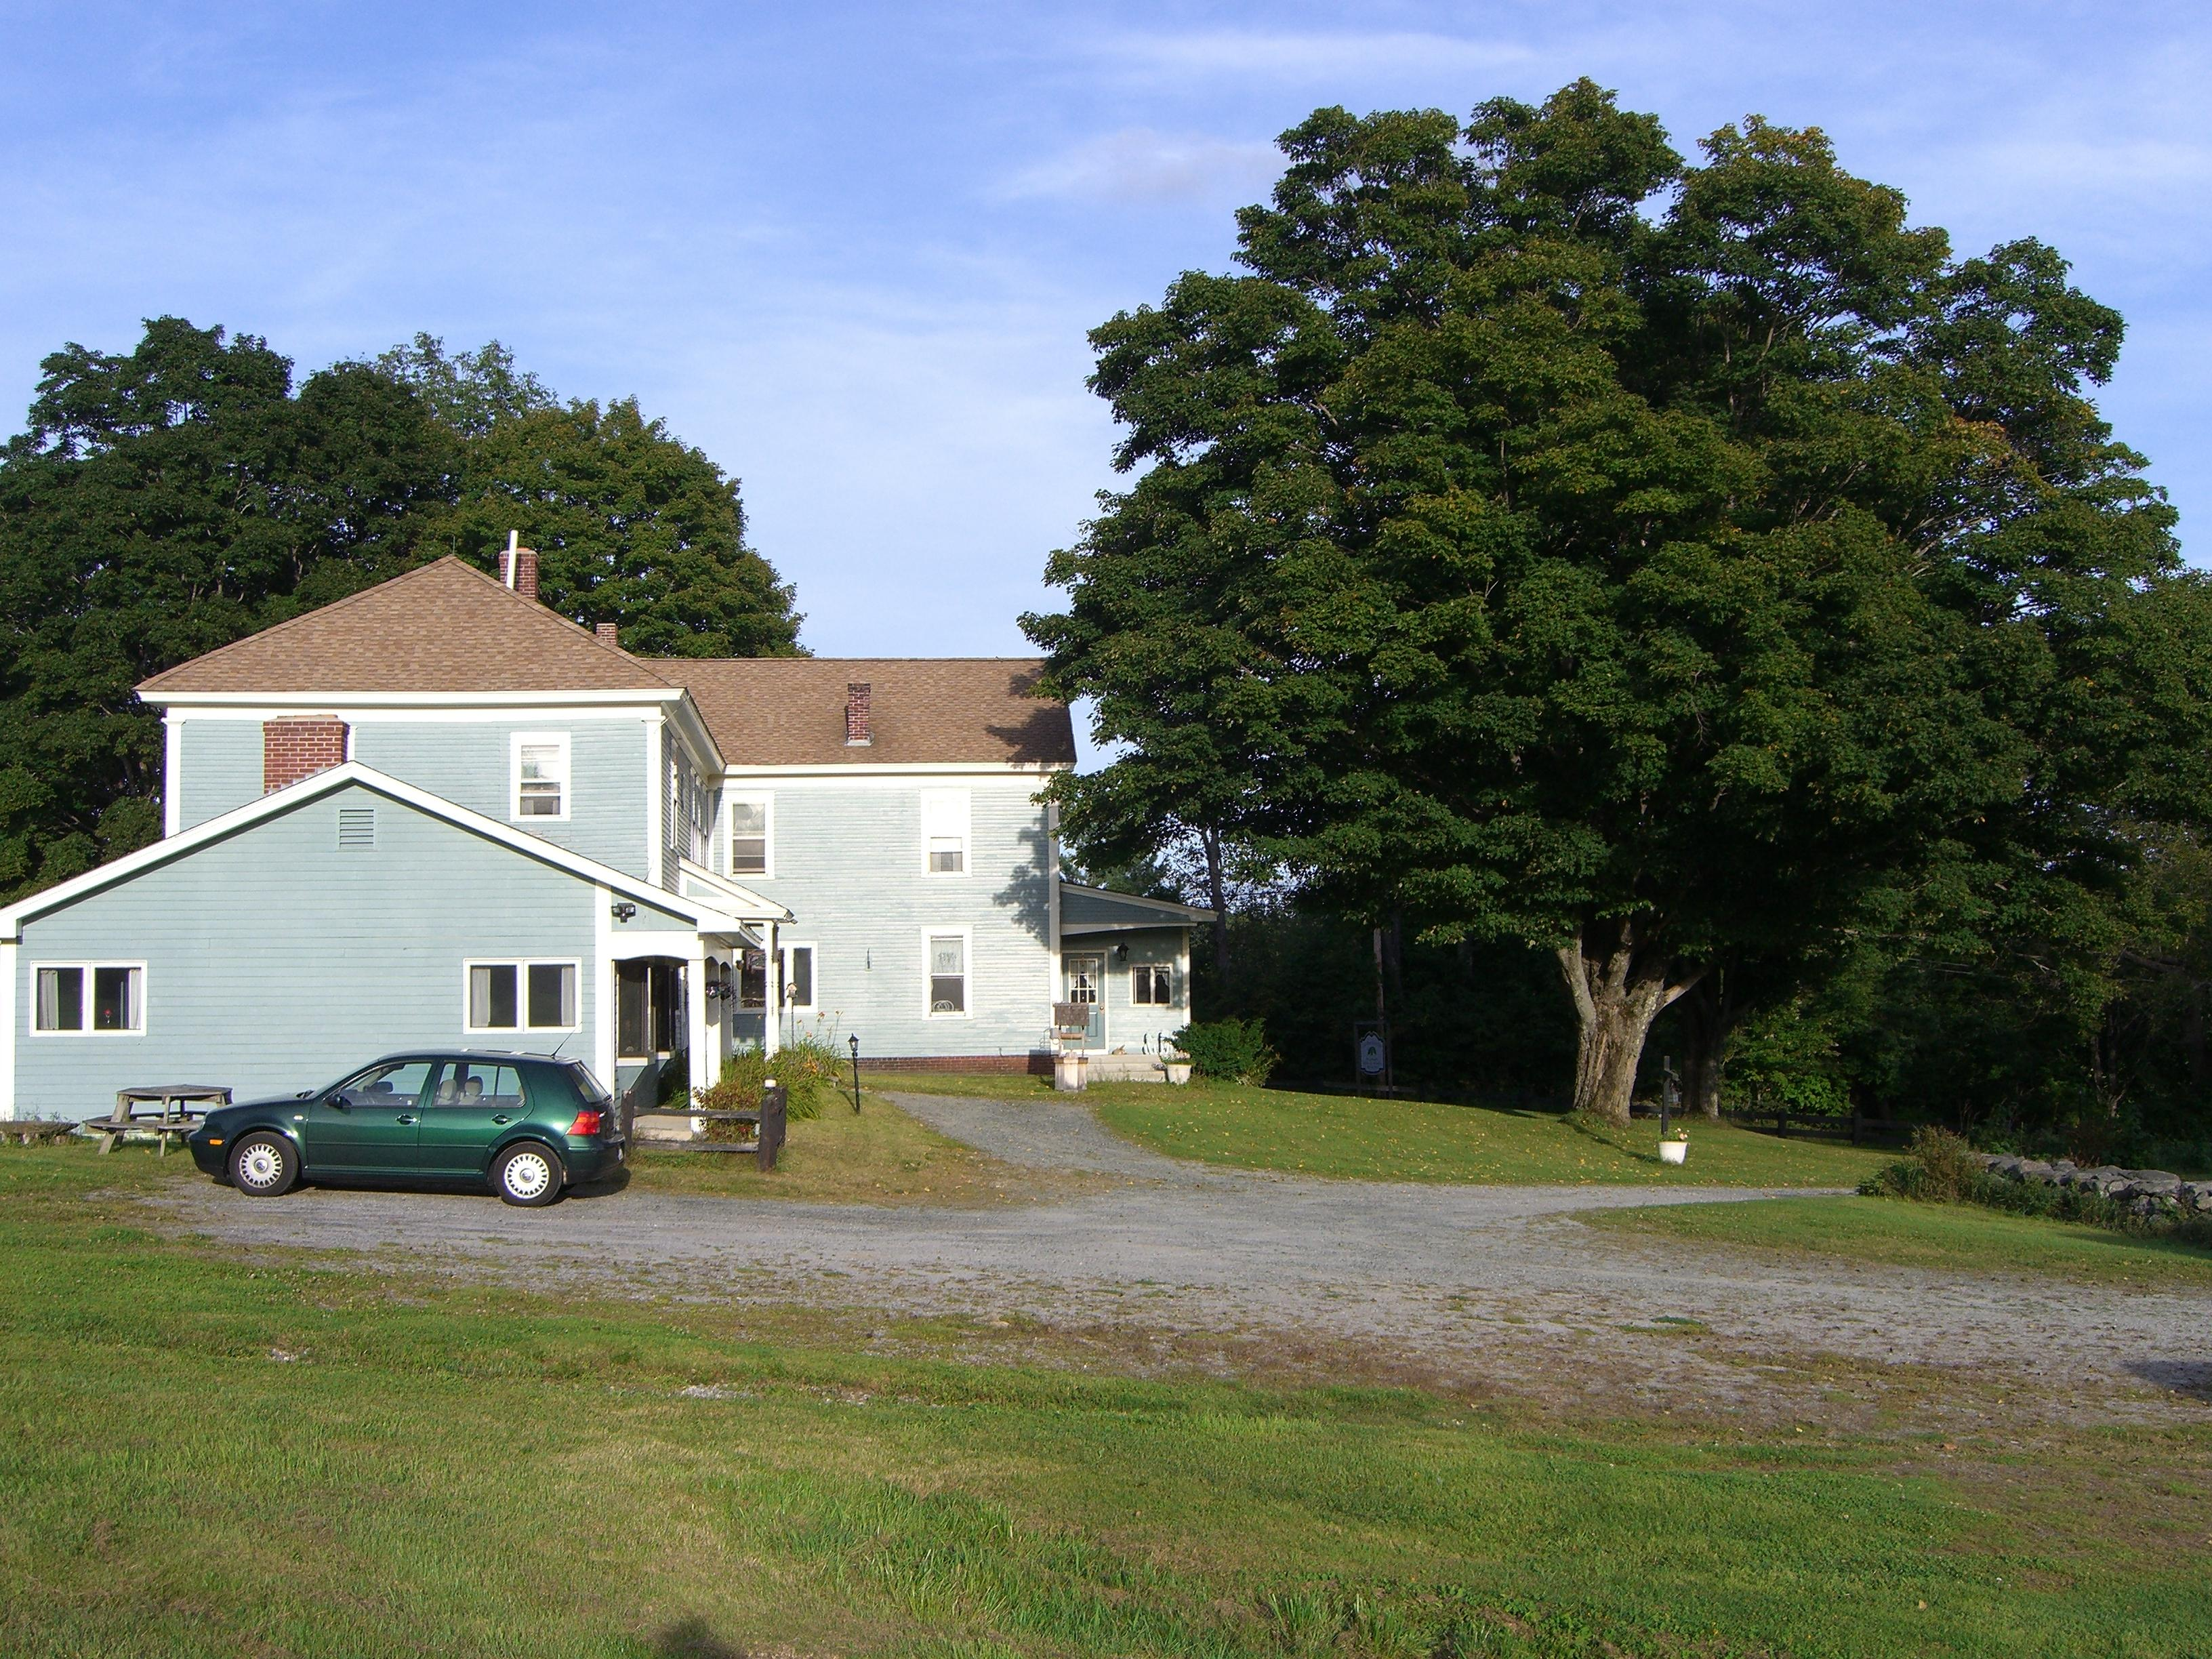 The Blue Acorn Bed and Breakfast